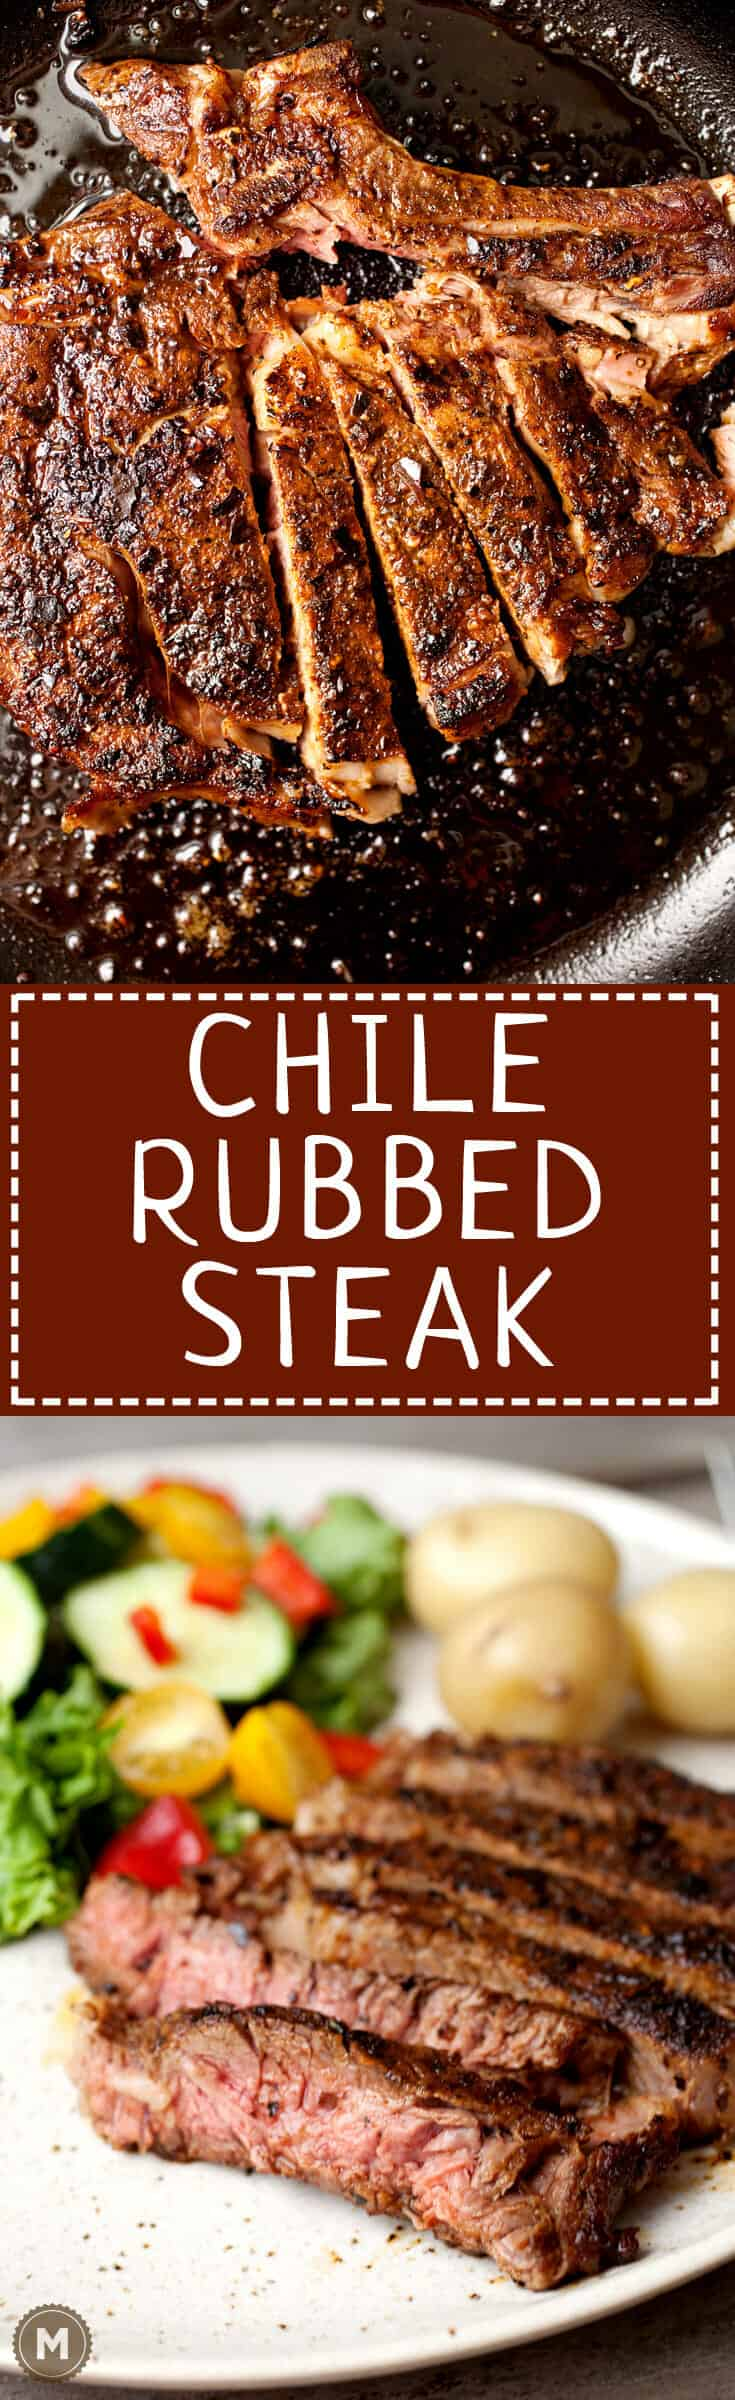 Chile Rubbed Steak: Roasted chiles mashed into a coarse chile powder is the perfect topping for a good steak! Here's how to do it! | macheesmo.com